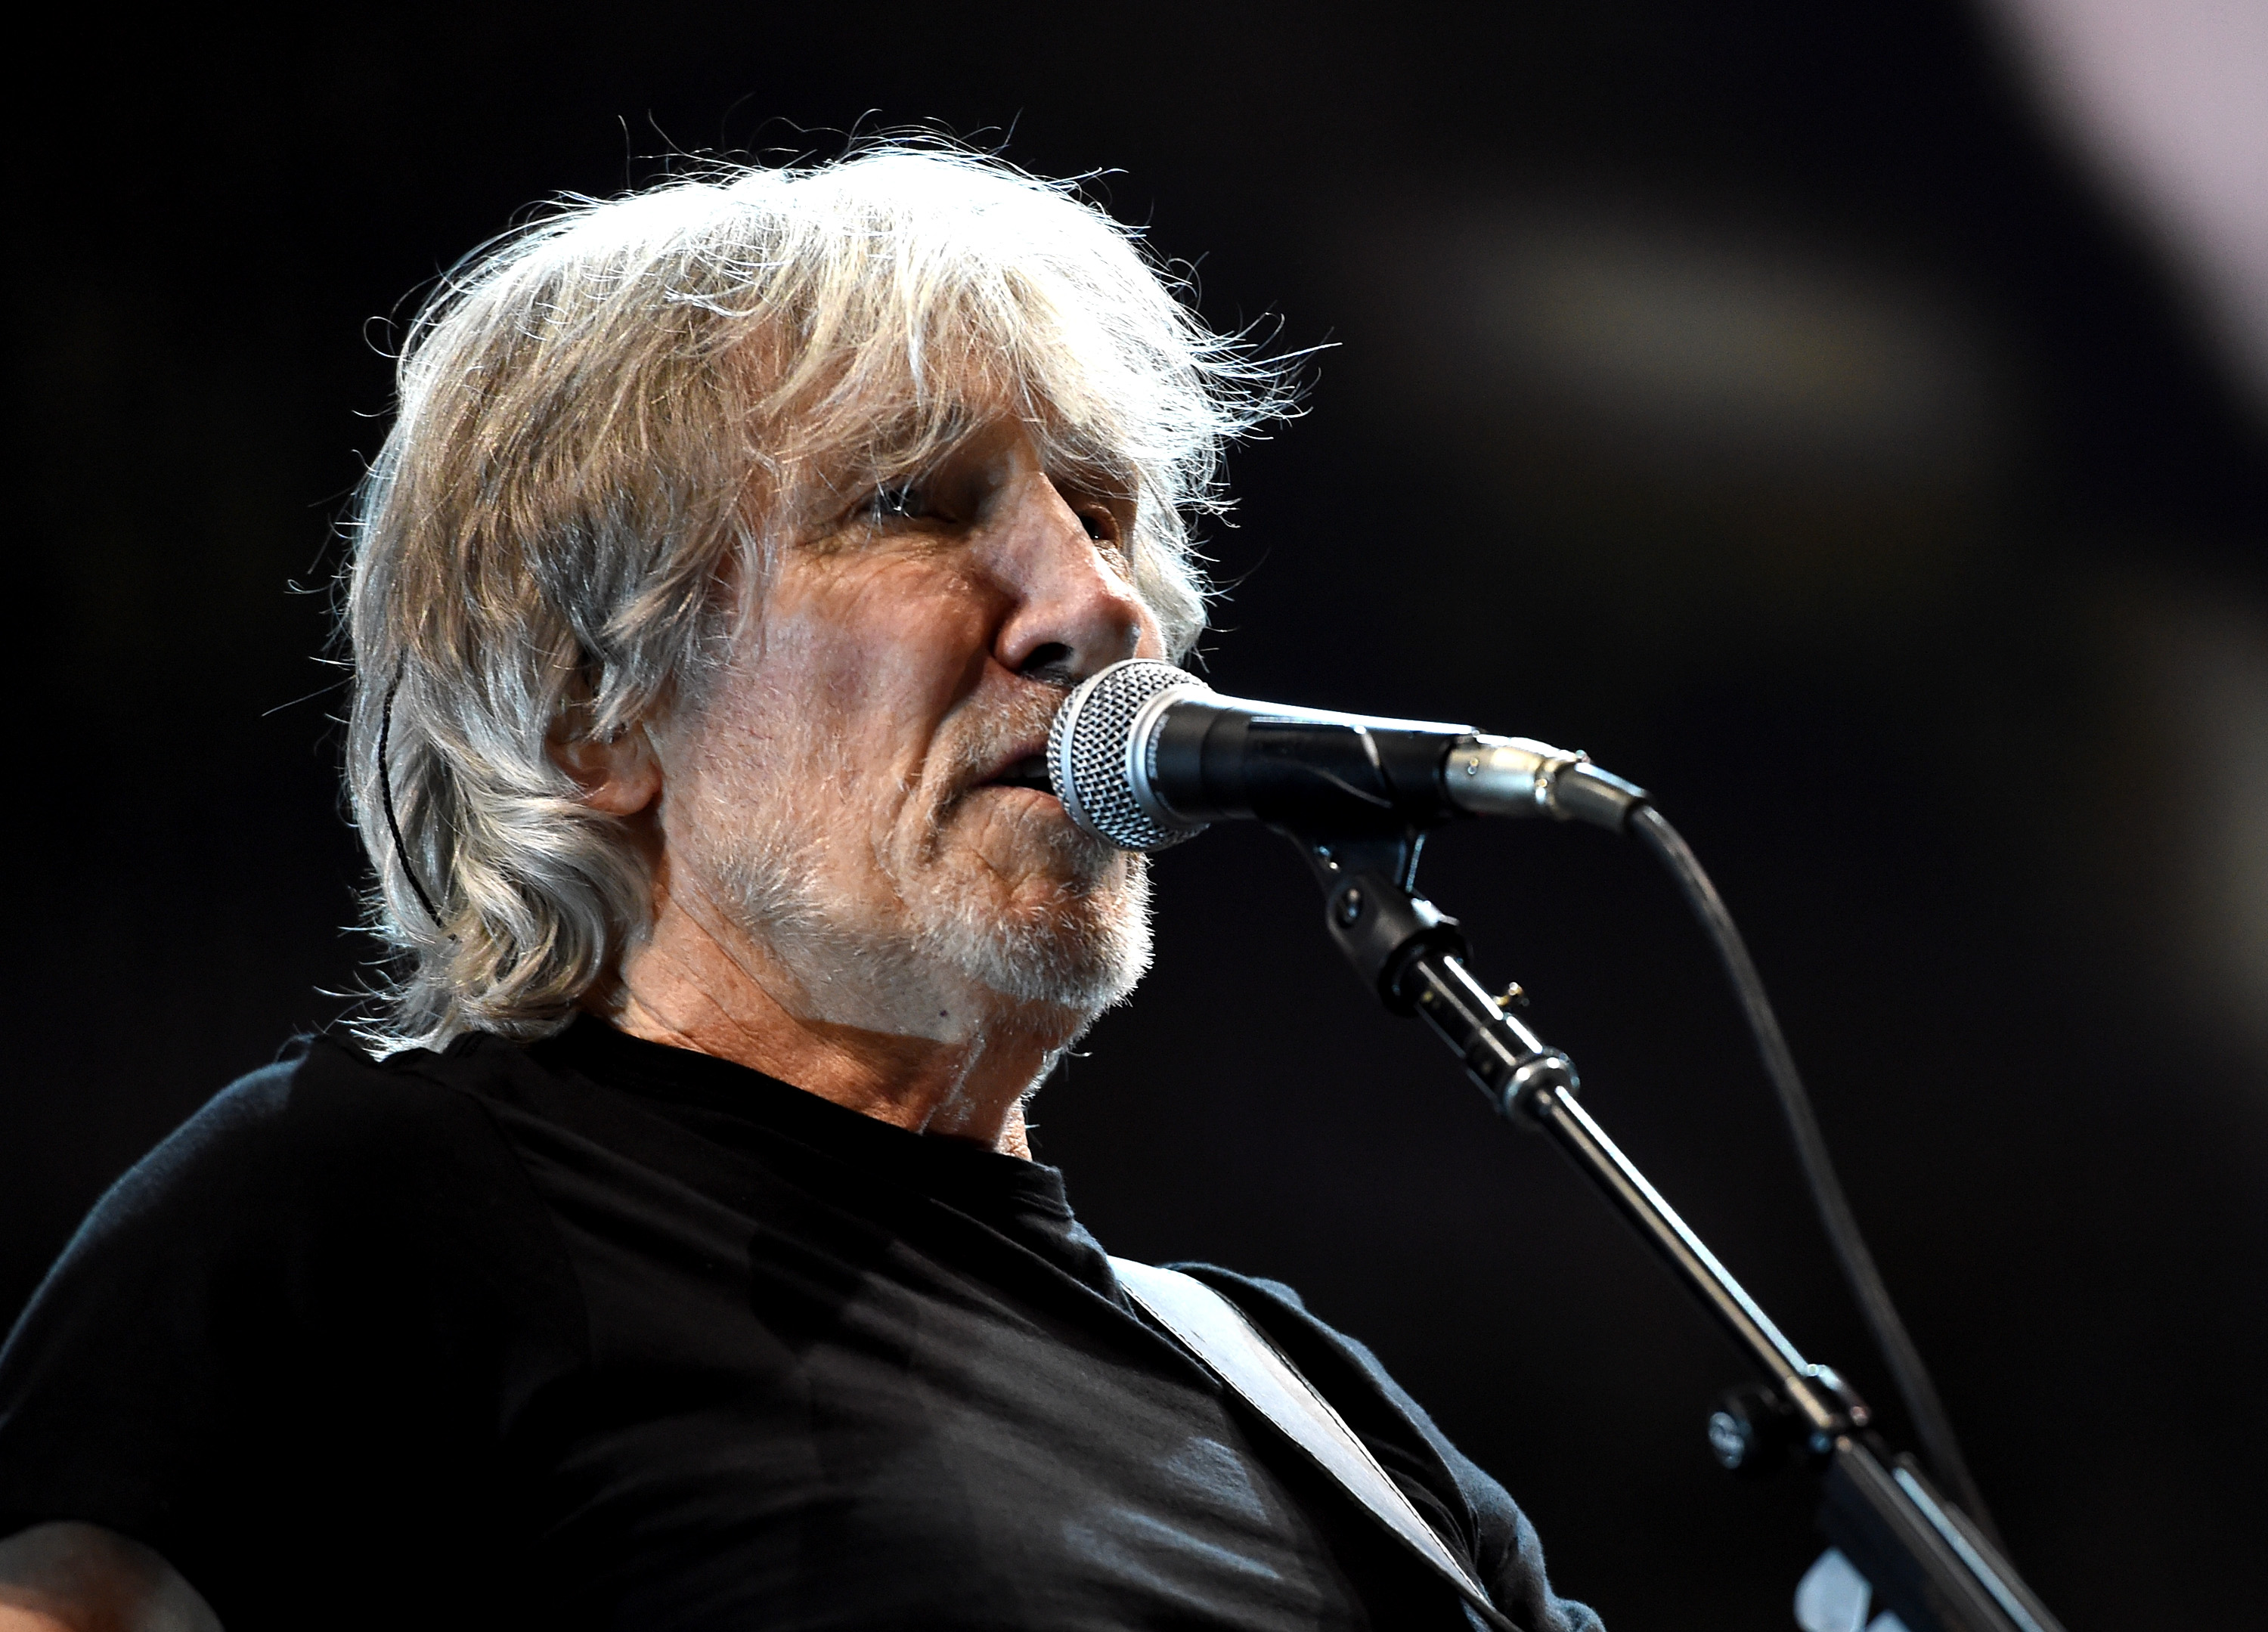 In This Video, Pink Floyd's Roger Waters Calls Bolsonaro a Neo-Fascist During a Concert in Brazil